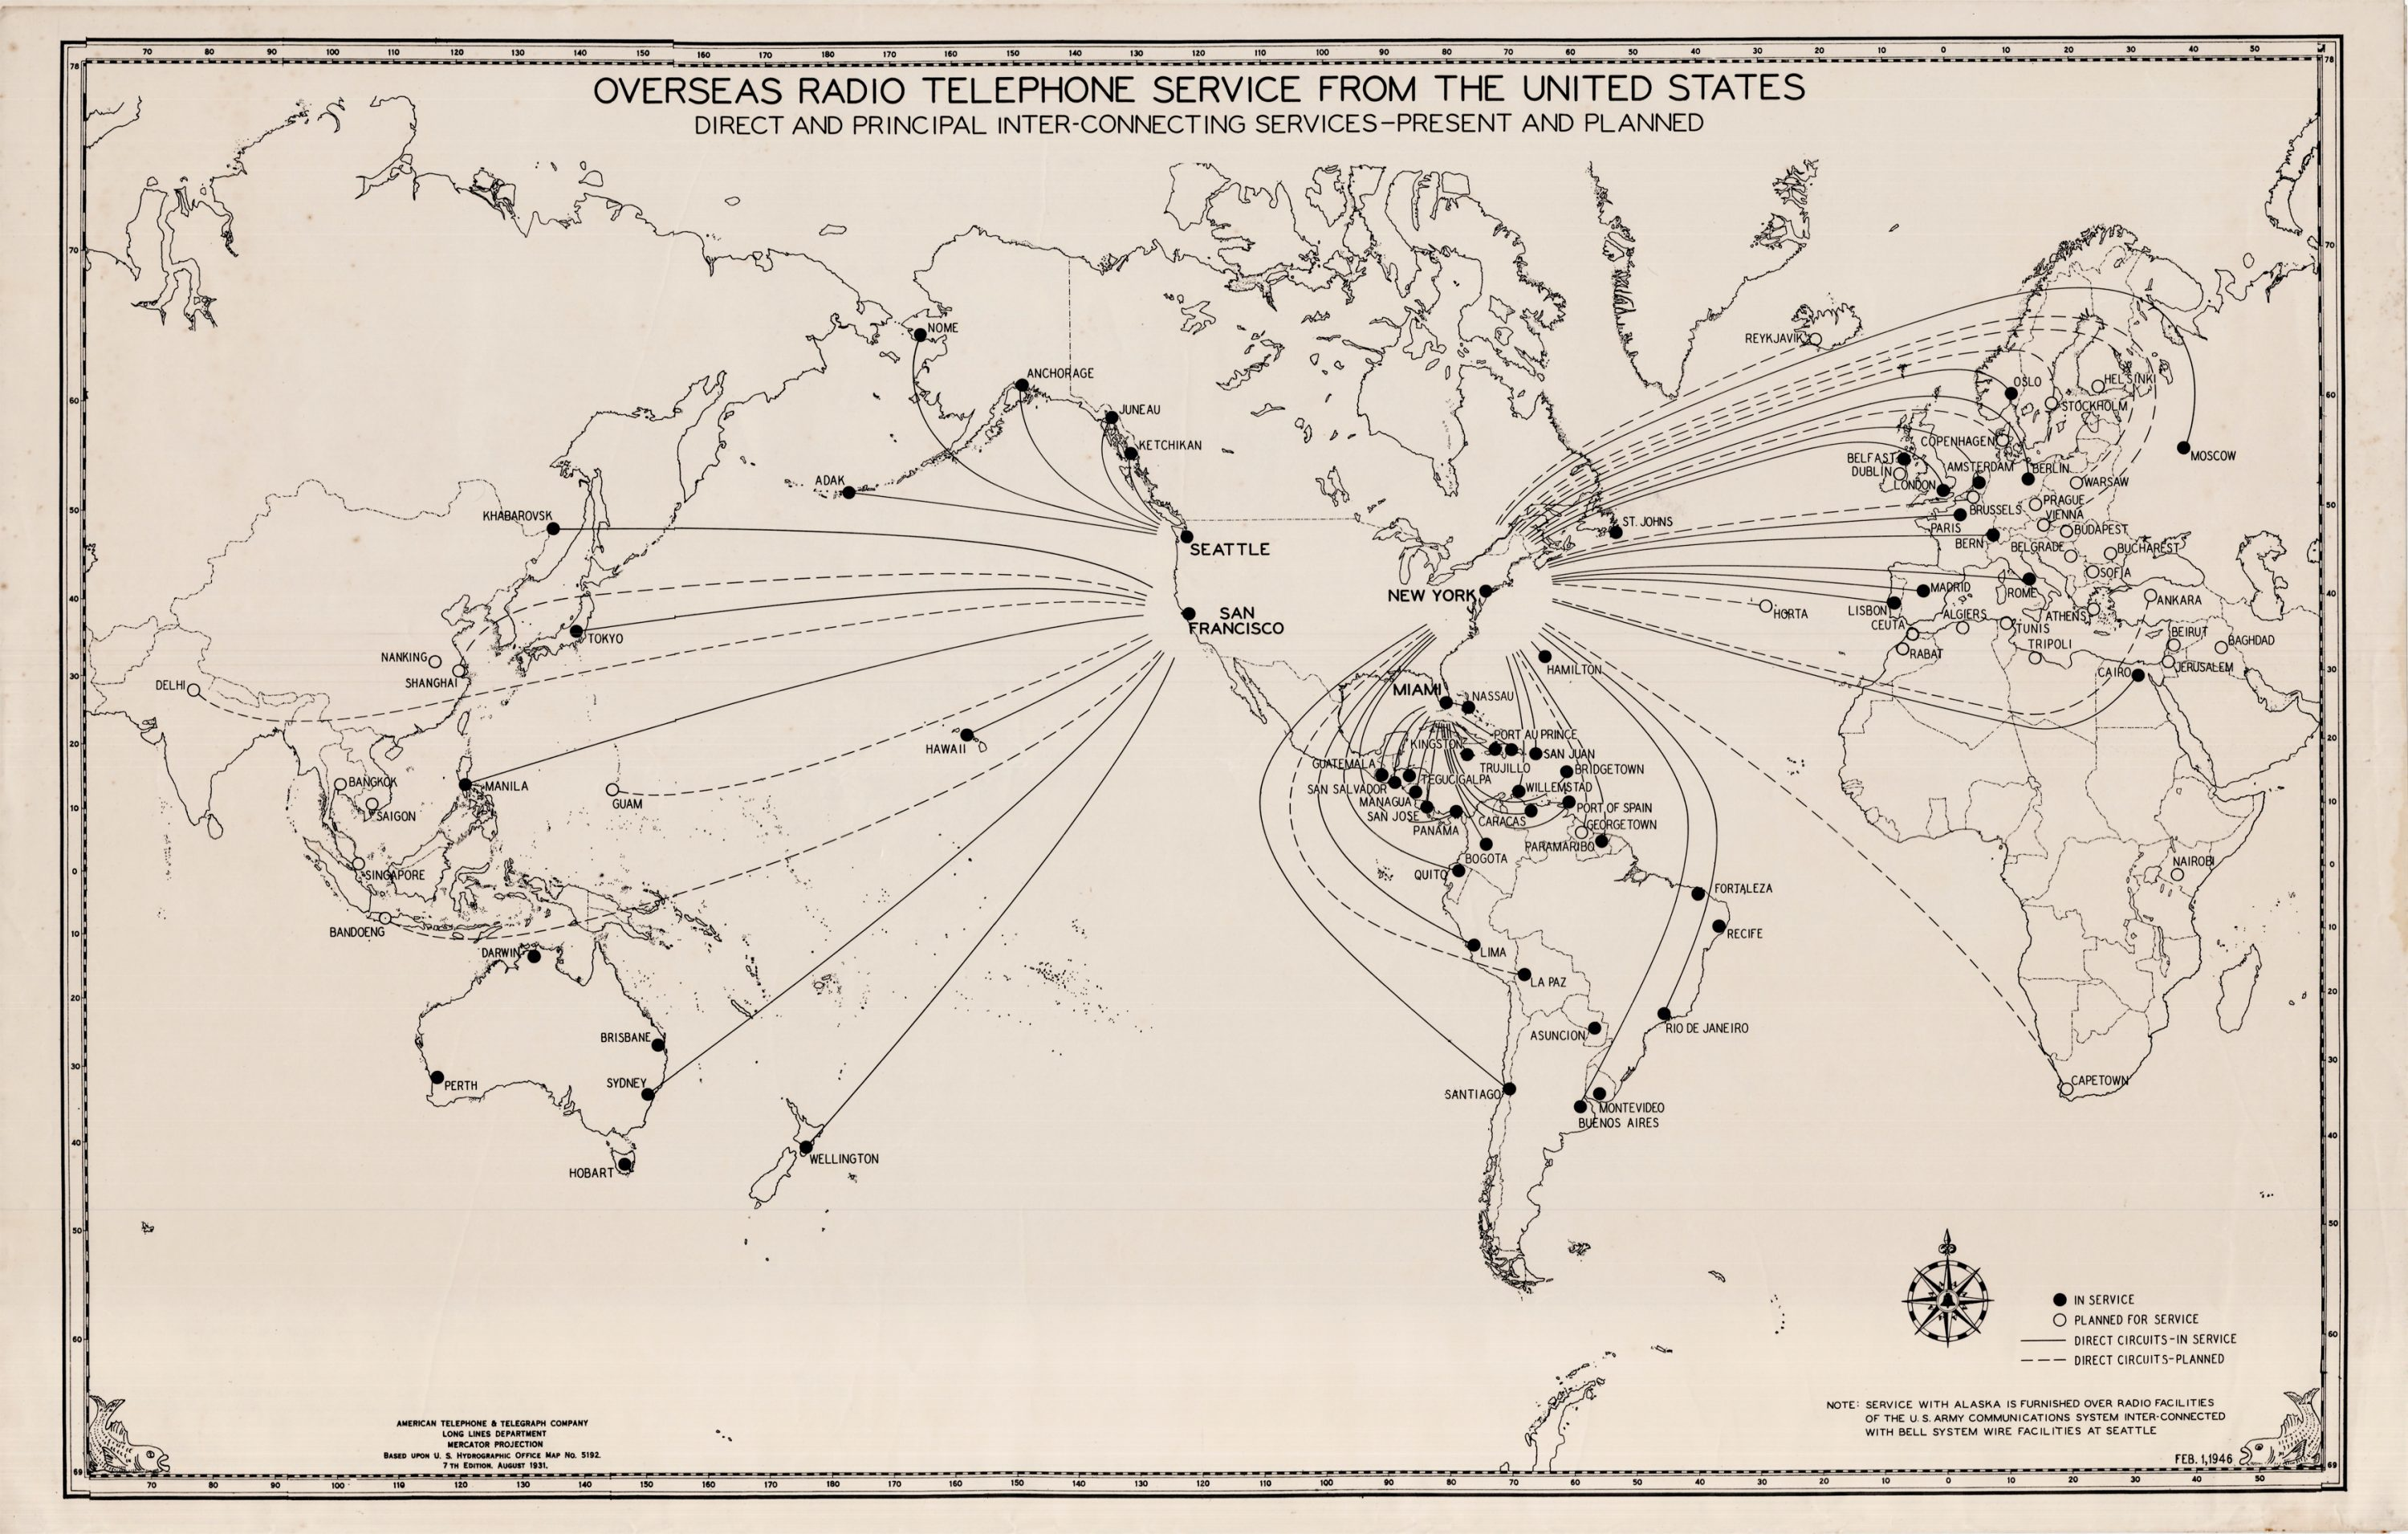 The worldwide AT&T radio telephone network as of 1946 - Rare ...